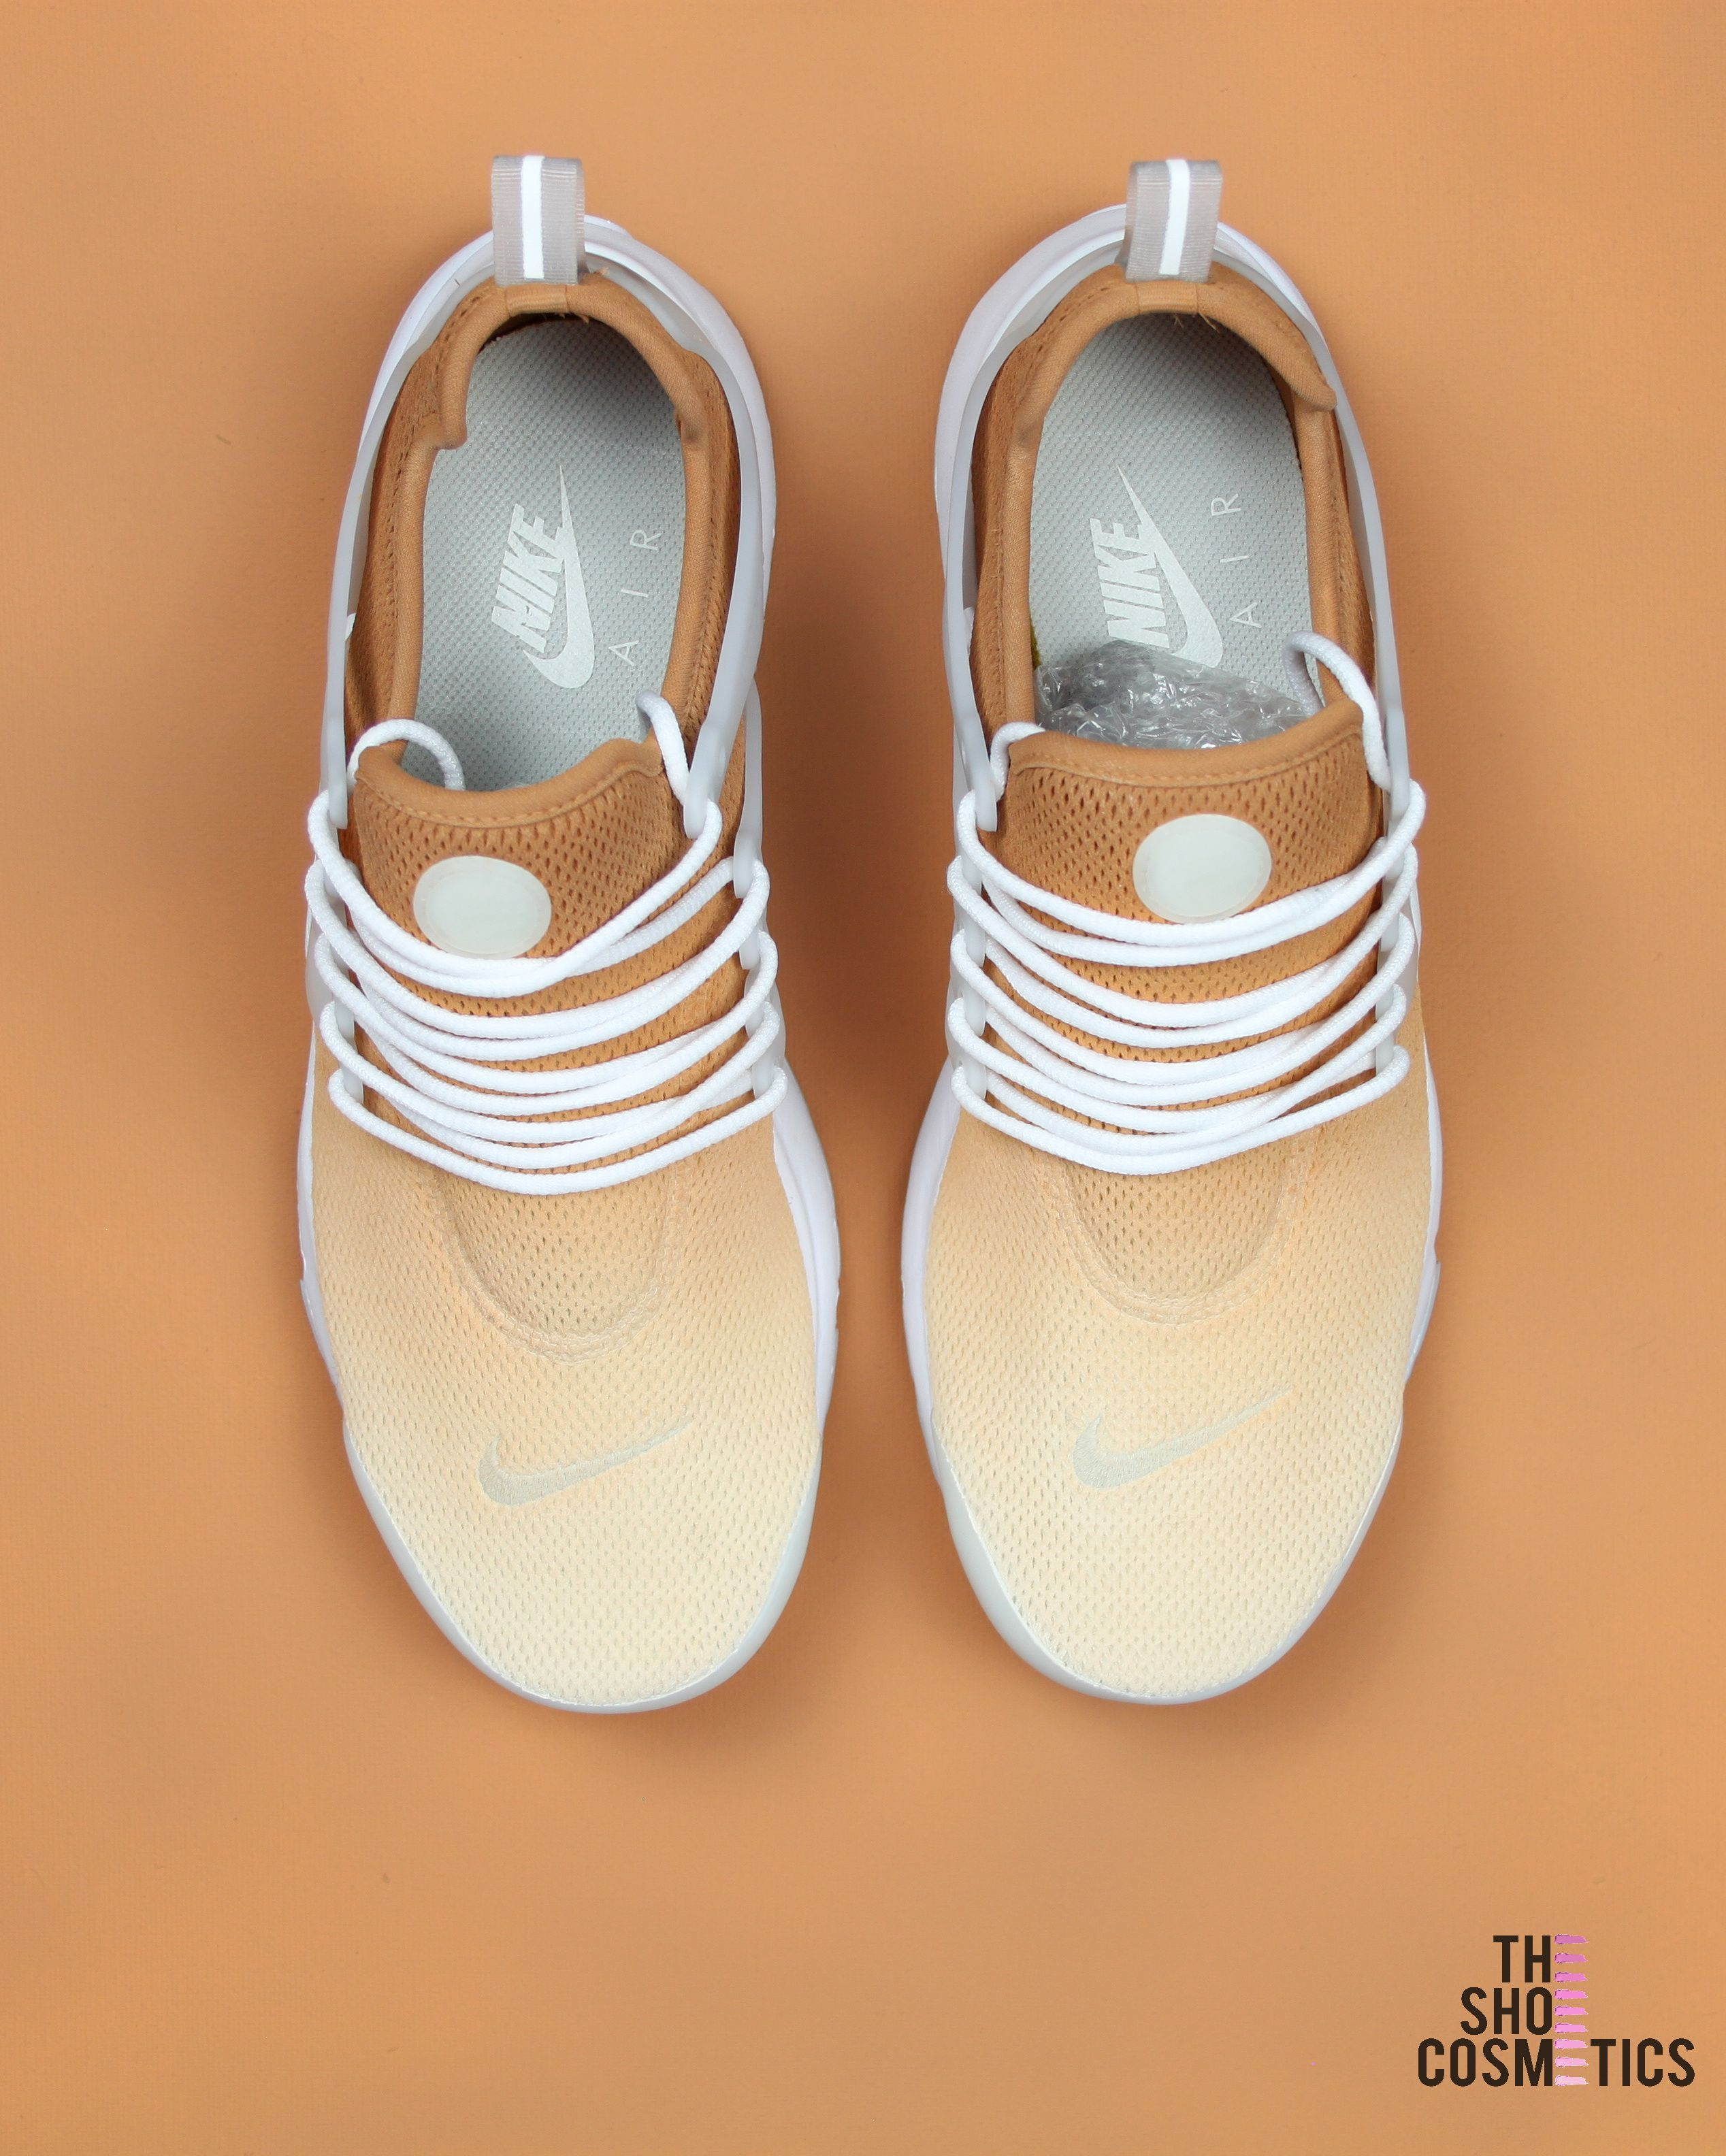 the latest fe538 a5fd4 Explore our custom Nike Air Presto sneakers in this tan ombre design. If you  love the Nike Air Presto then these Custom Nike shoes are perfect for you.